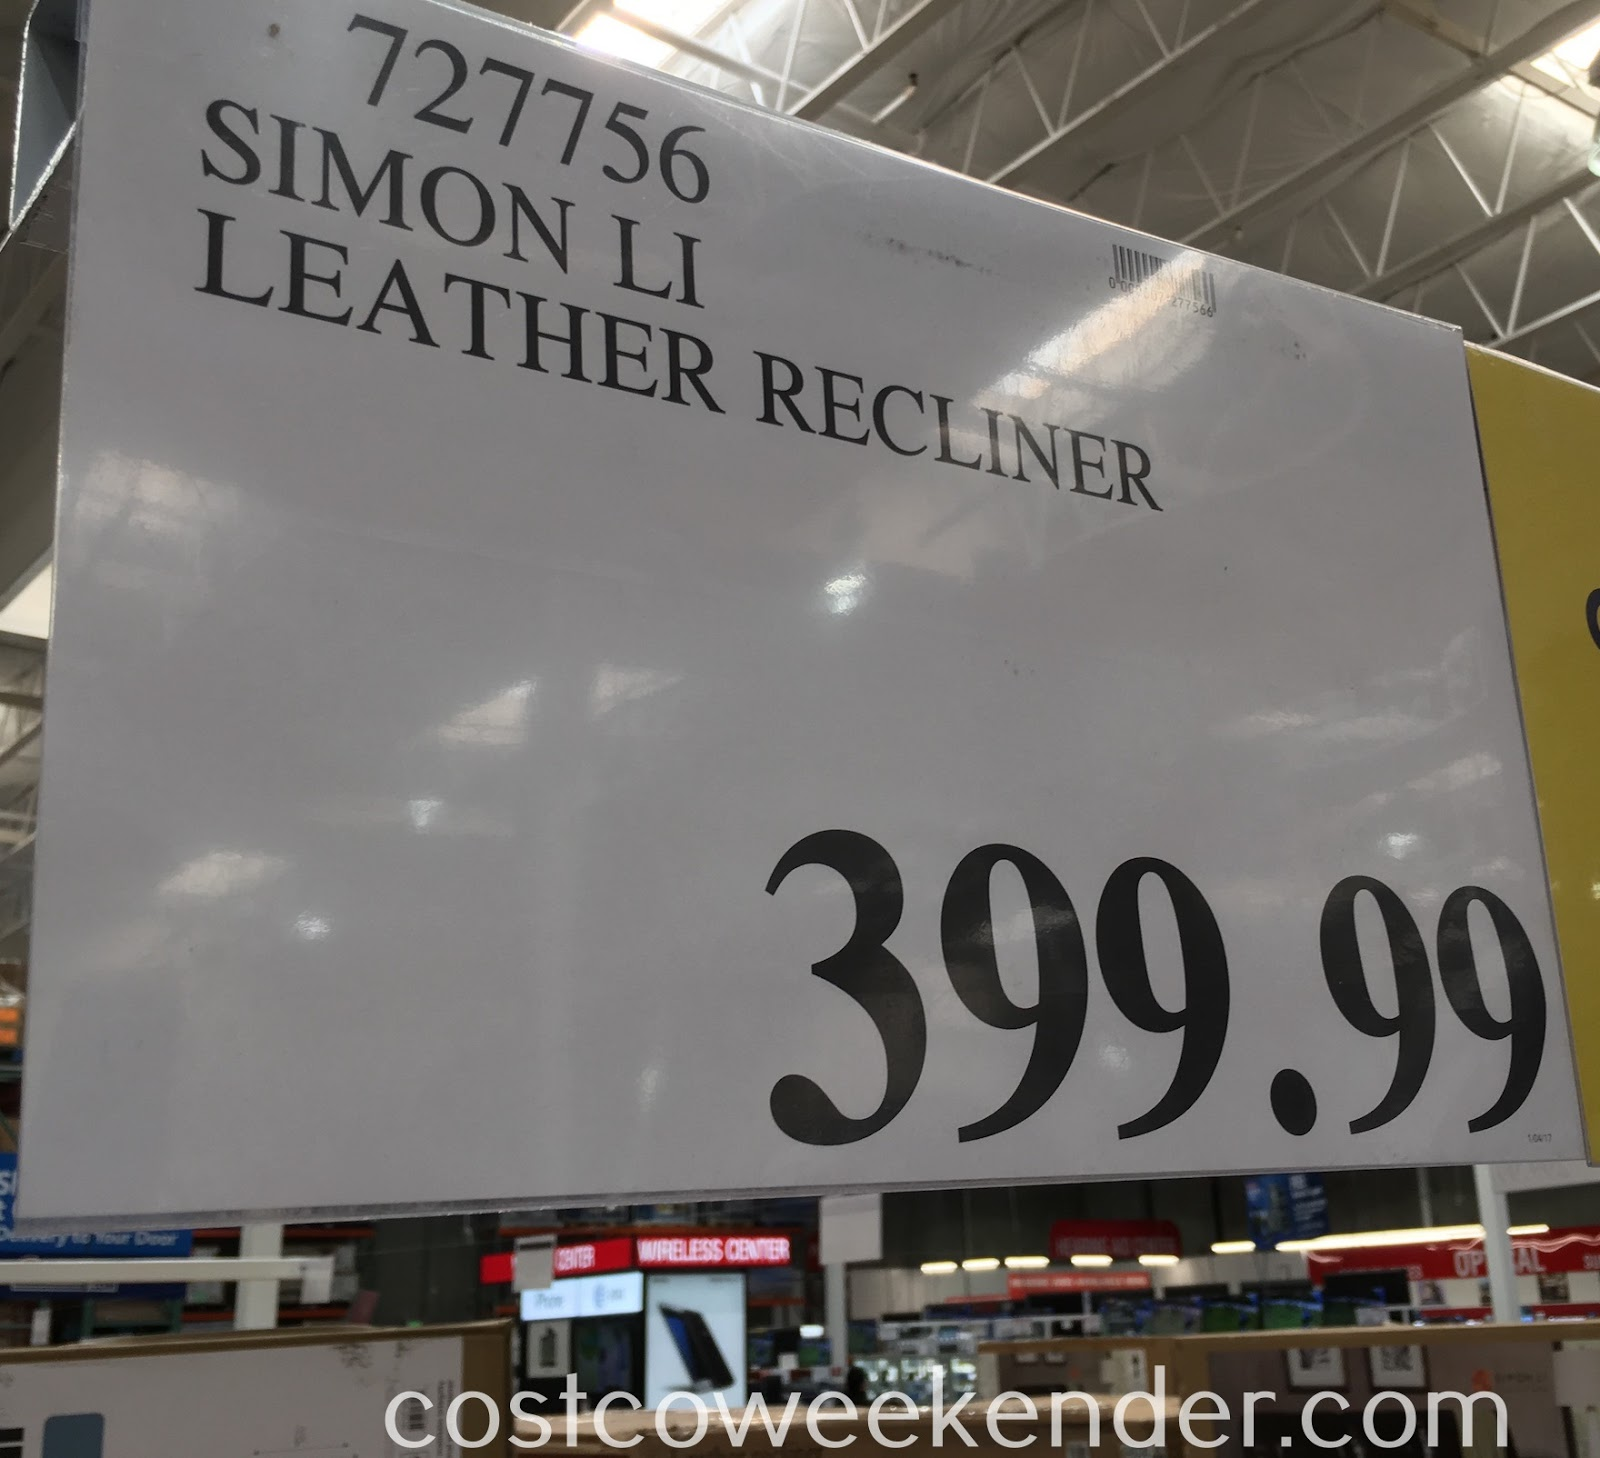 Deal For The Simon Li Furniture Leather Glider Recliner Chair At Costco